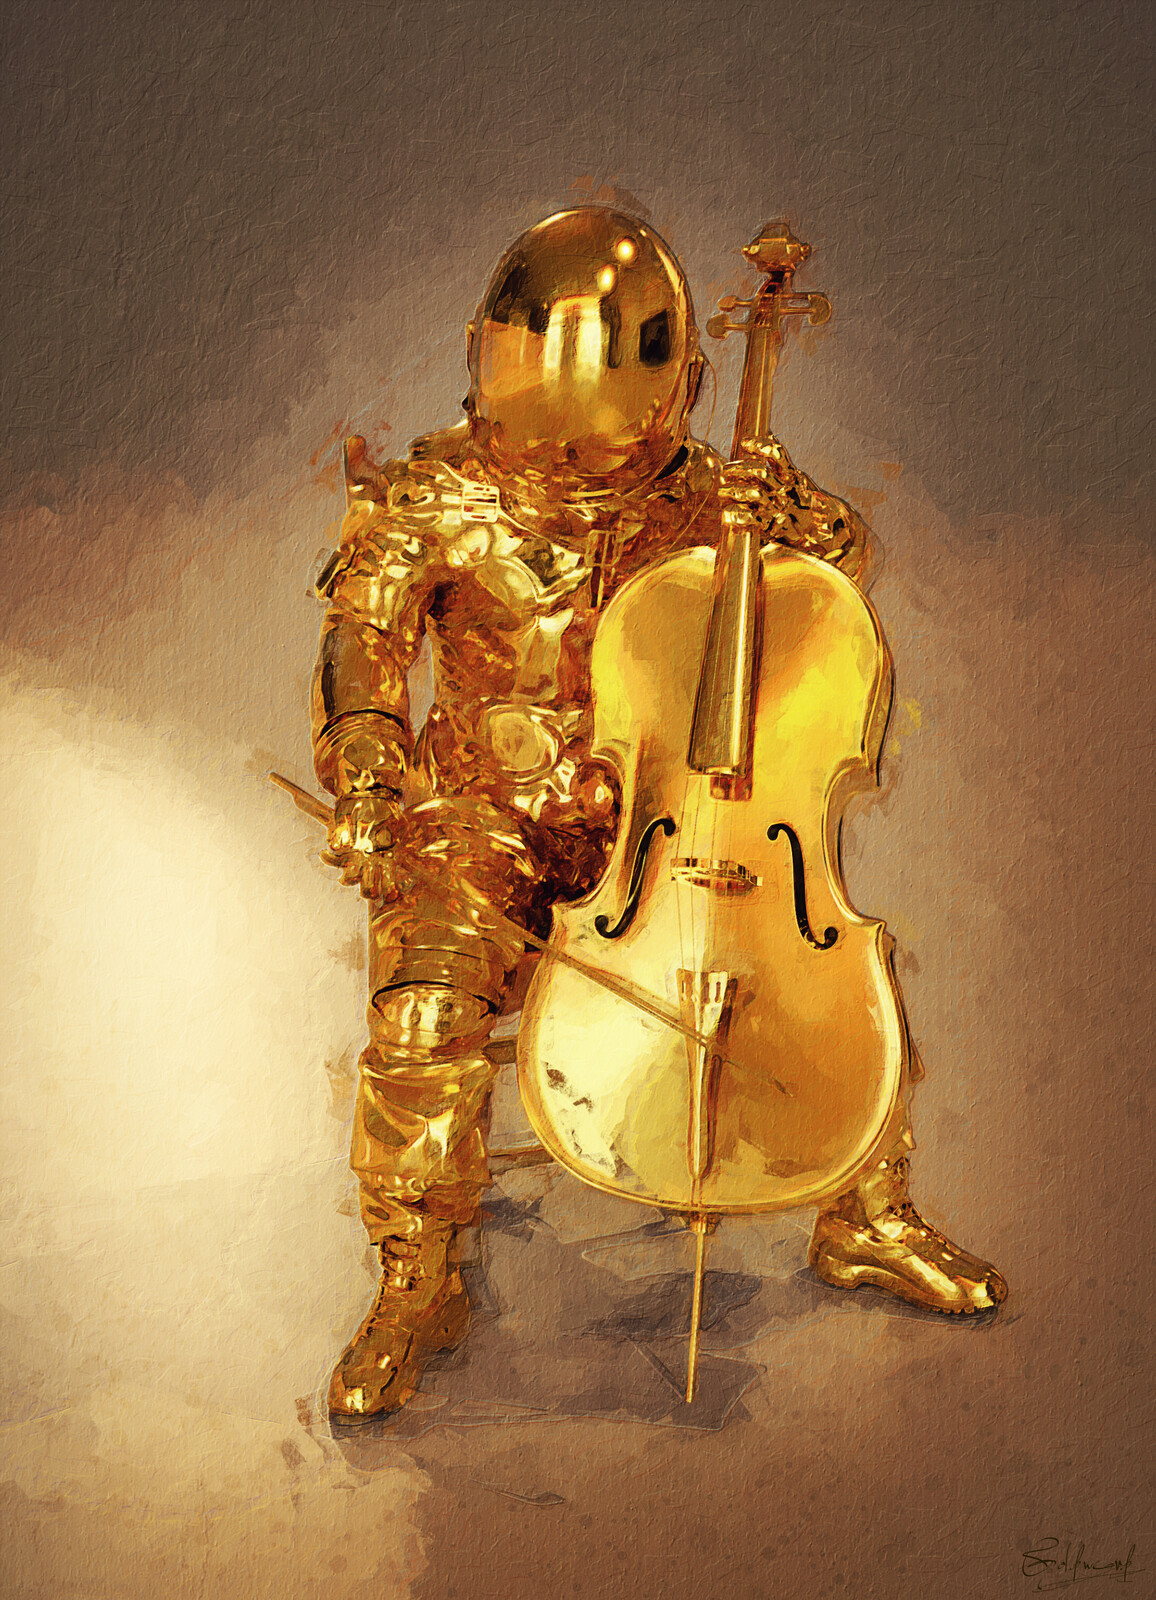 Warmer than gold, The cello player